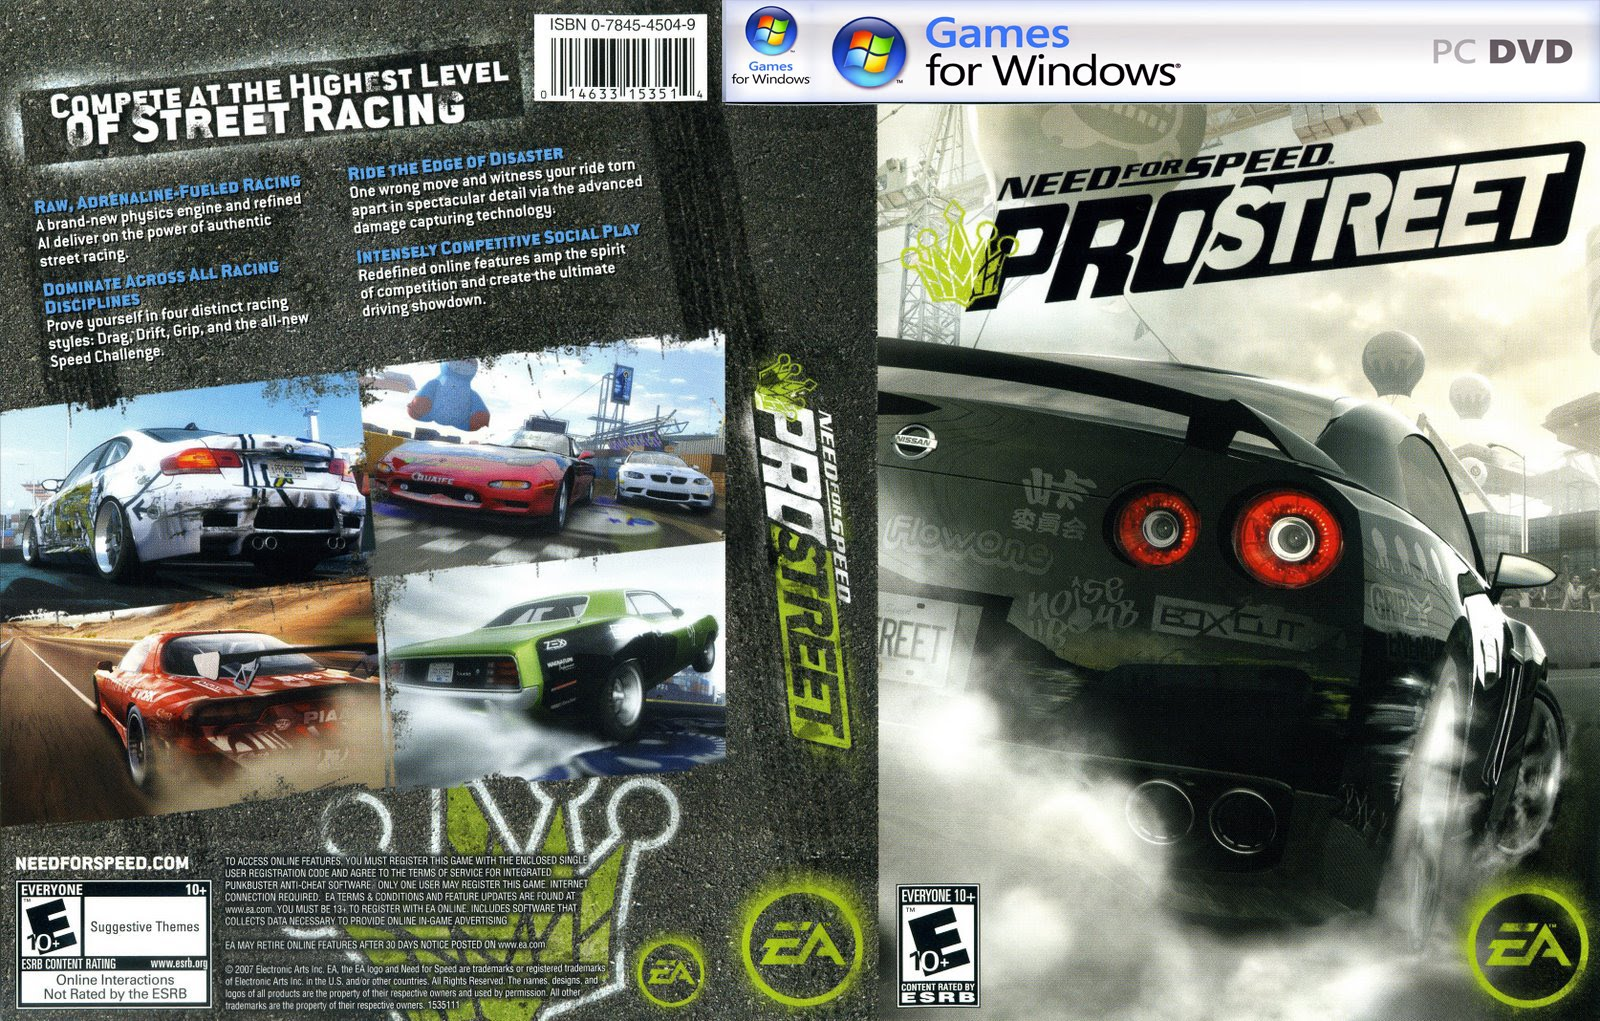 Playstation 2, playstation portable, pc, pc download, wii состояние: не продаётся франшиза: need for speed